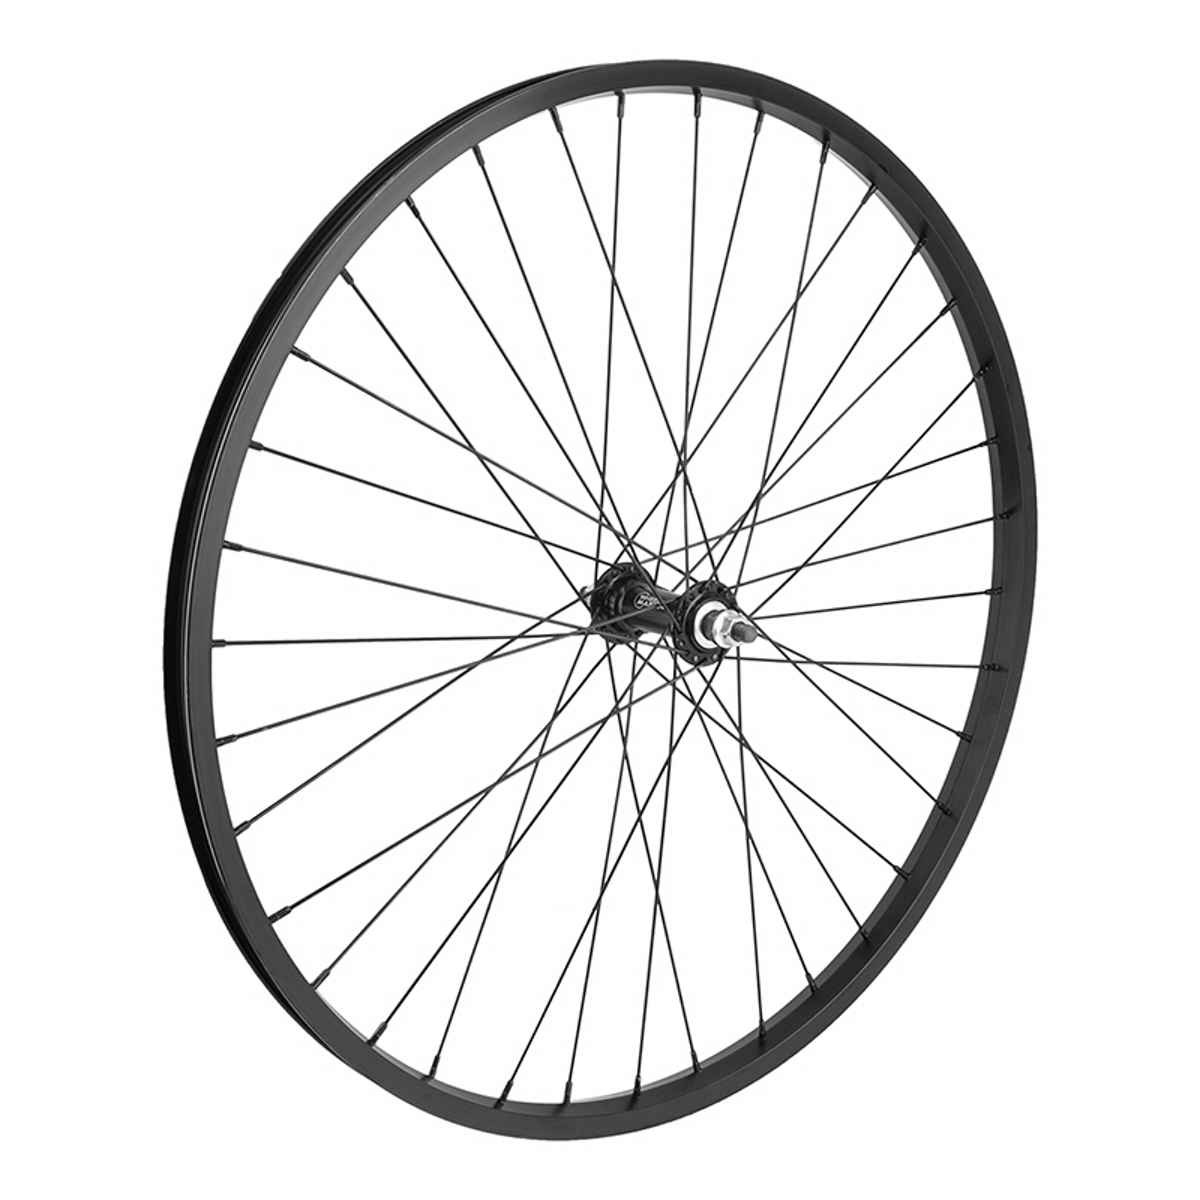 Wheel Masters 26 Inch Alloy Mountain Single Wall - 741593